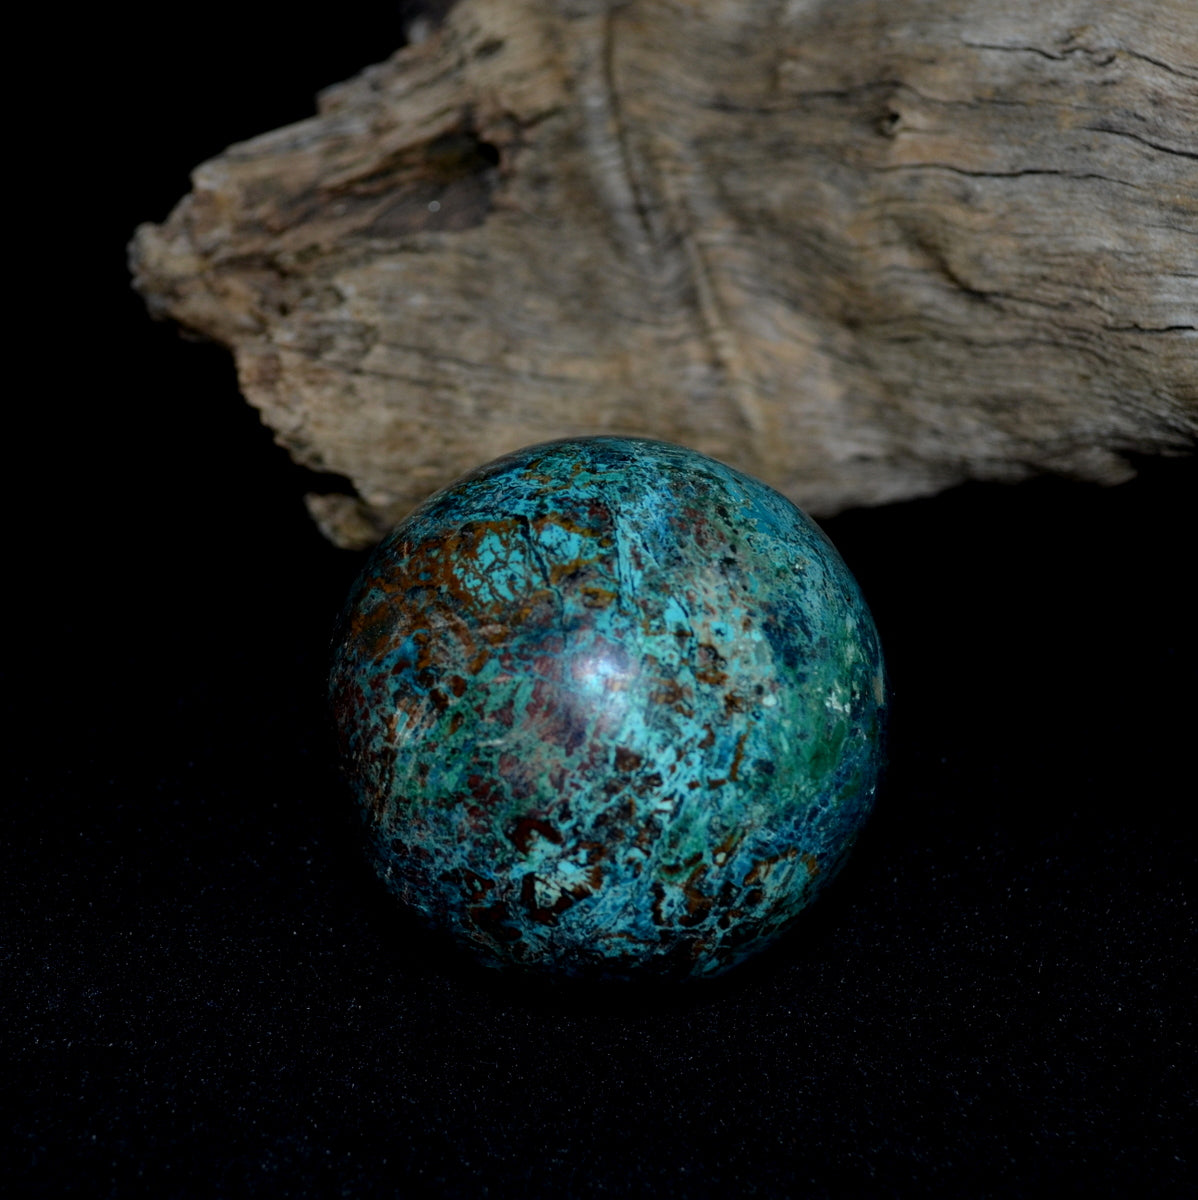 Shattuckite Gemstone Sphere - Truth Humanity Encouragement Spiritual Healing - Shop Now at Illiom Crystals - Afterpay Available